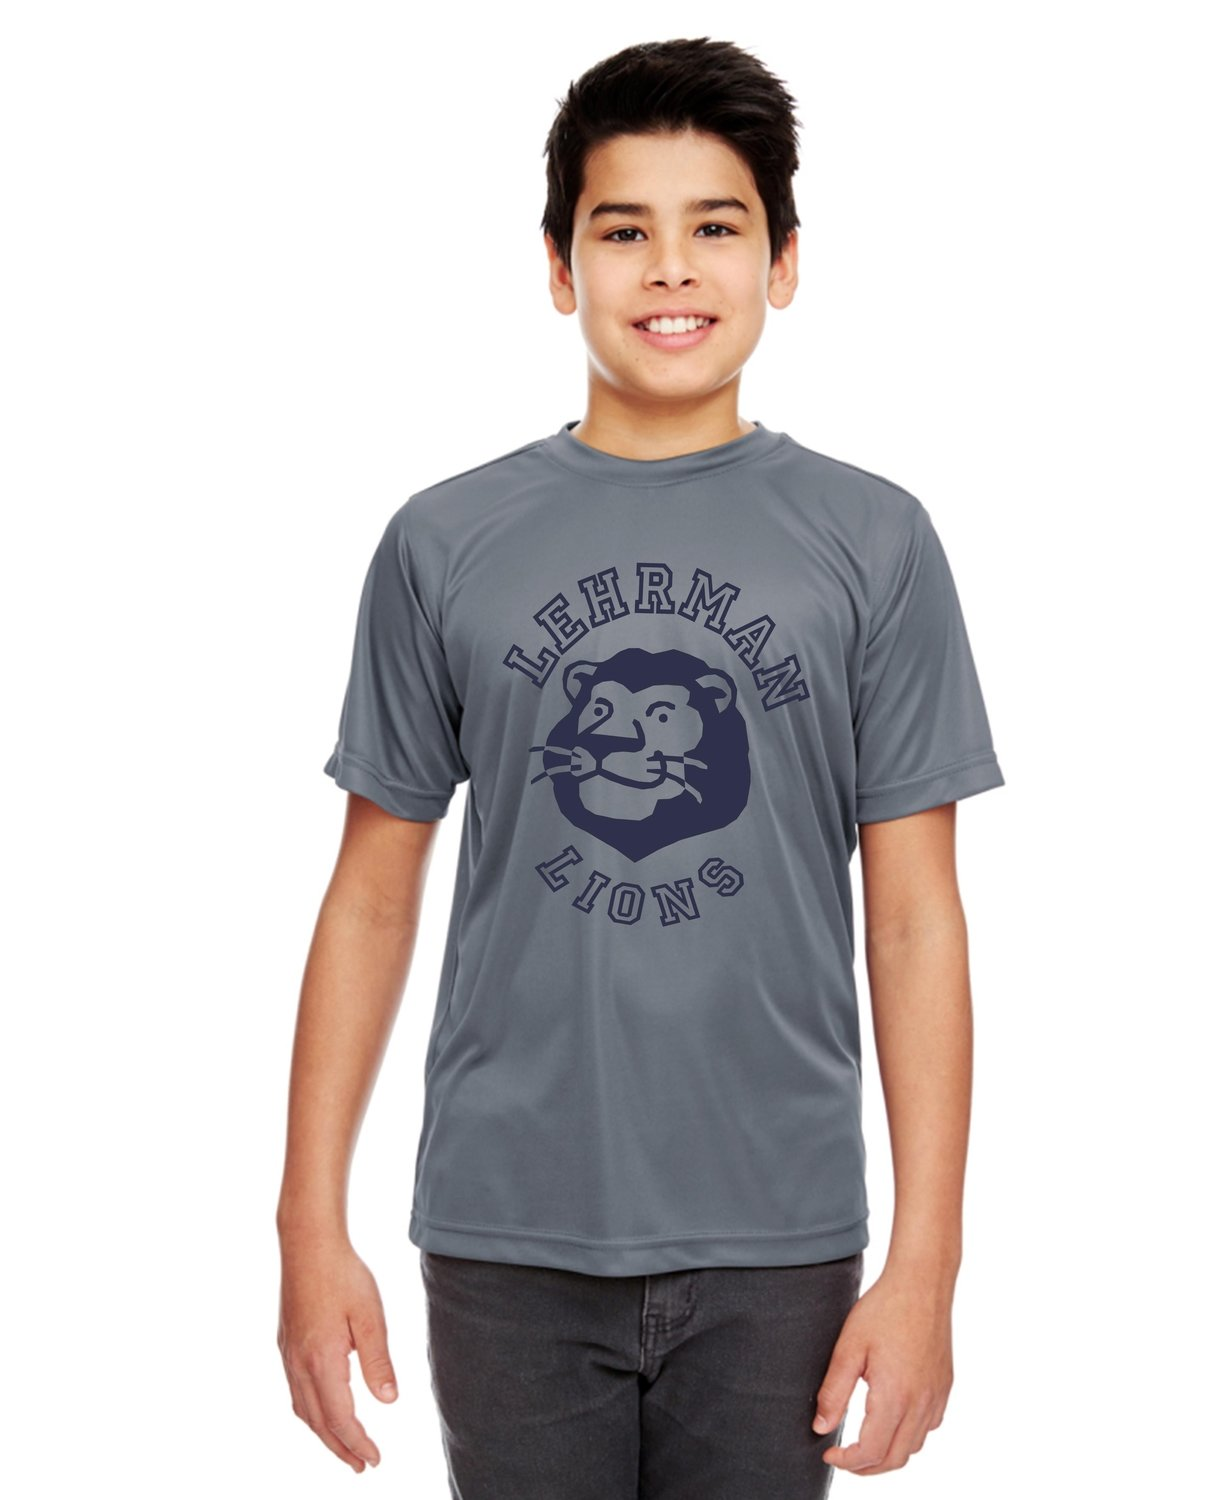 NEW! Dryfit Short Sleeve Unisex Grey Lion YOUTH